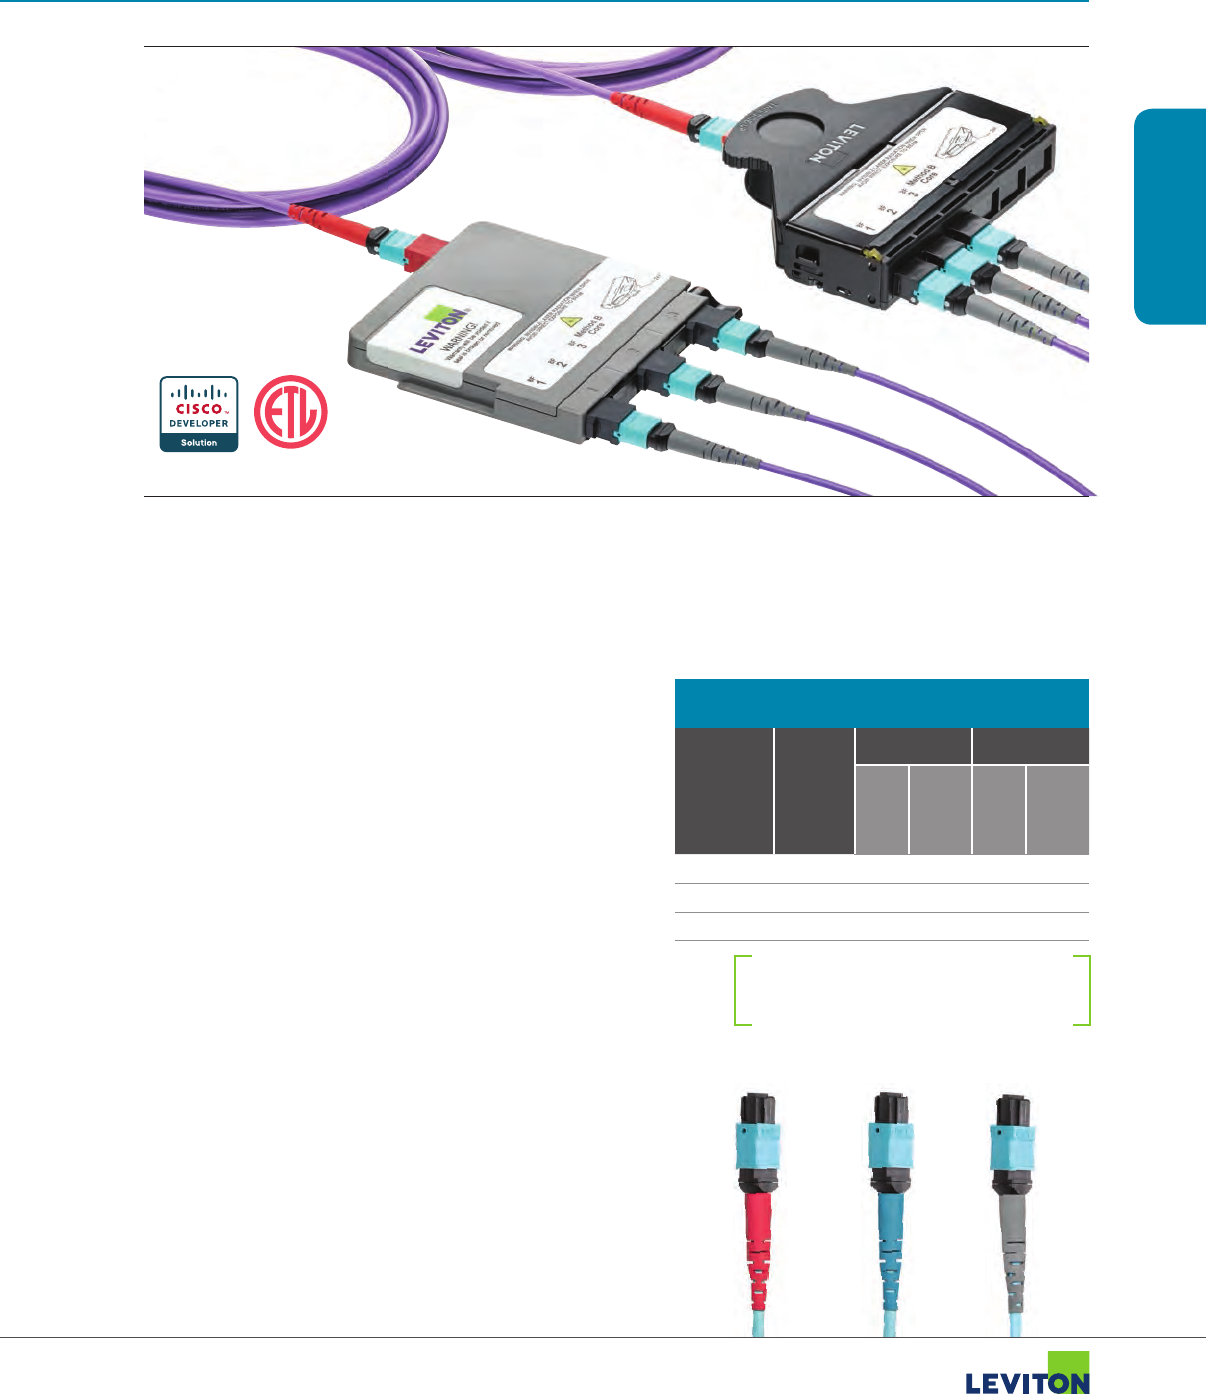 1000348187 Catalog Icing Kit Further Master Appliance Heat Gun On 120v Tape Wiring Prepare For 40 100g With The Opt X Unity Multimode System